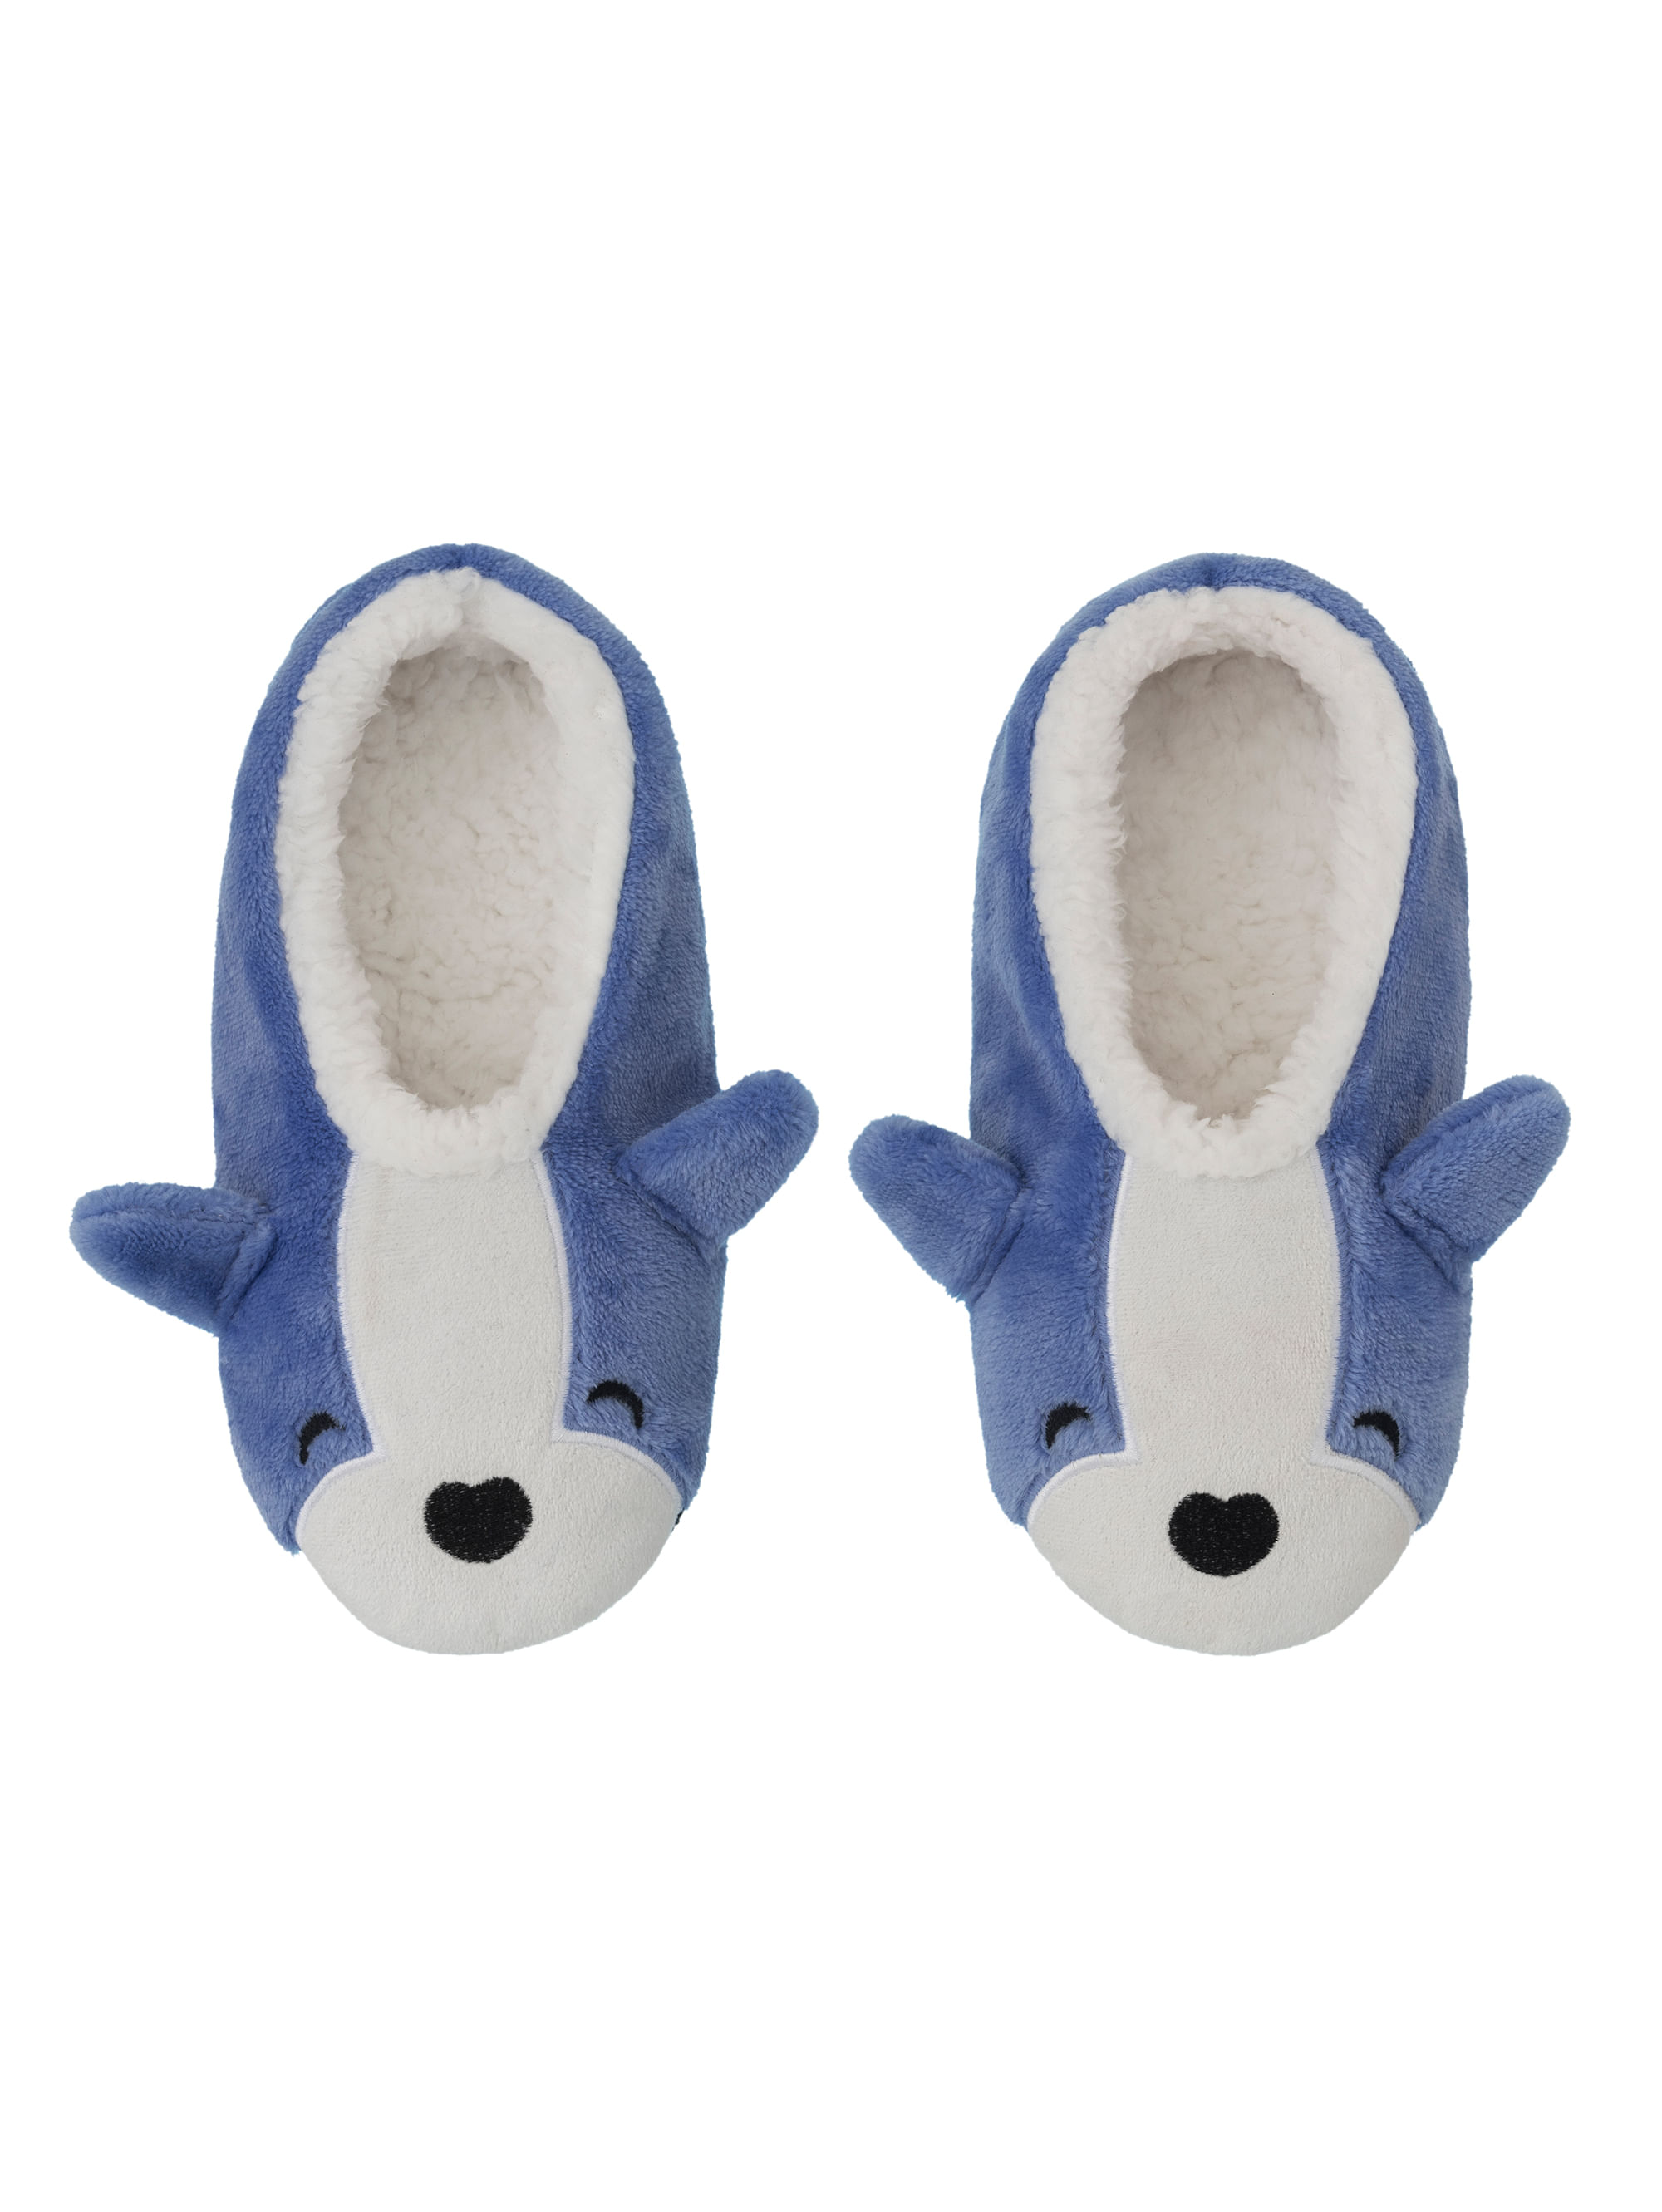 PANTUFA-SP-DOG-OFF-1604015102026-ANY-ANY